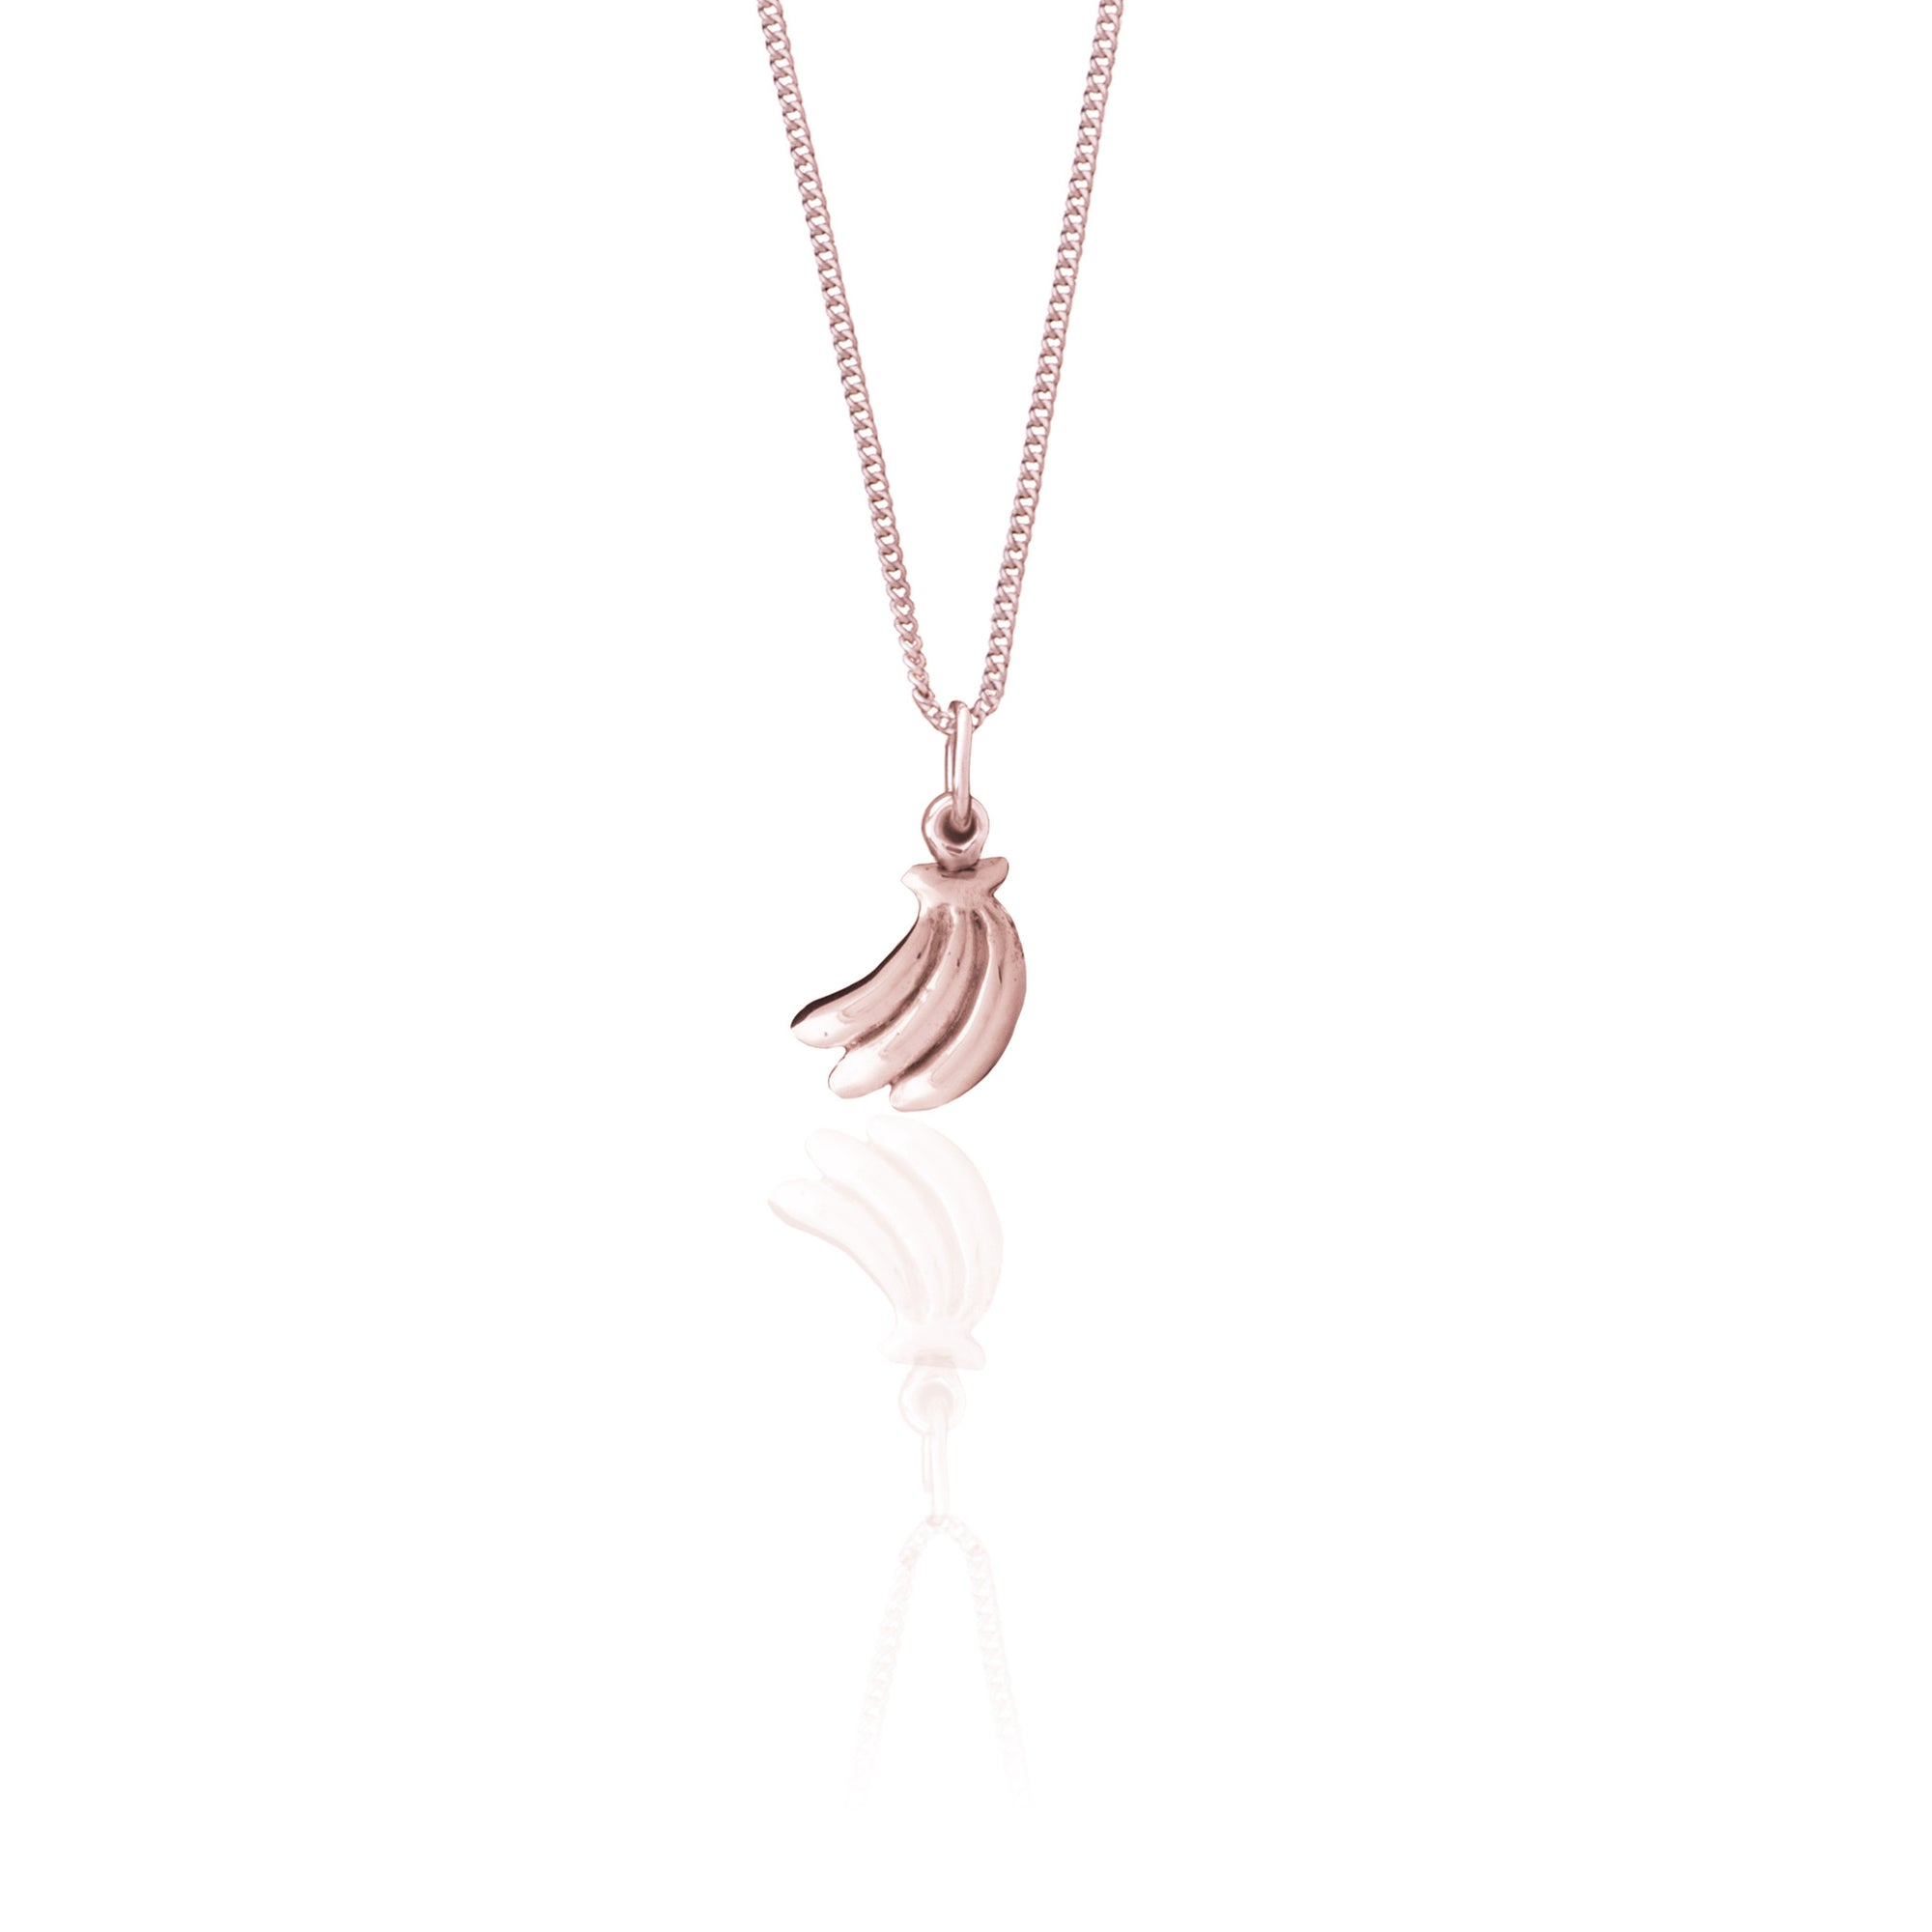 Luna & Rose - You Drive me Bananas Charm - Rose Gold